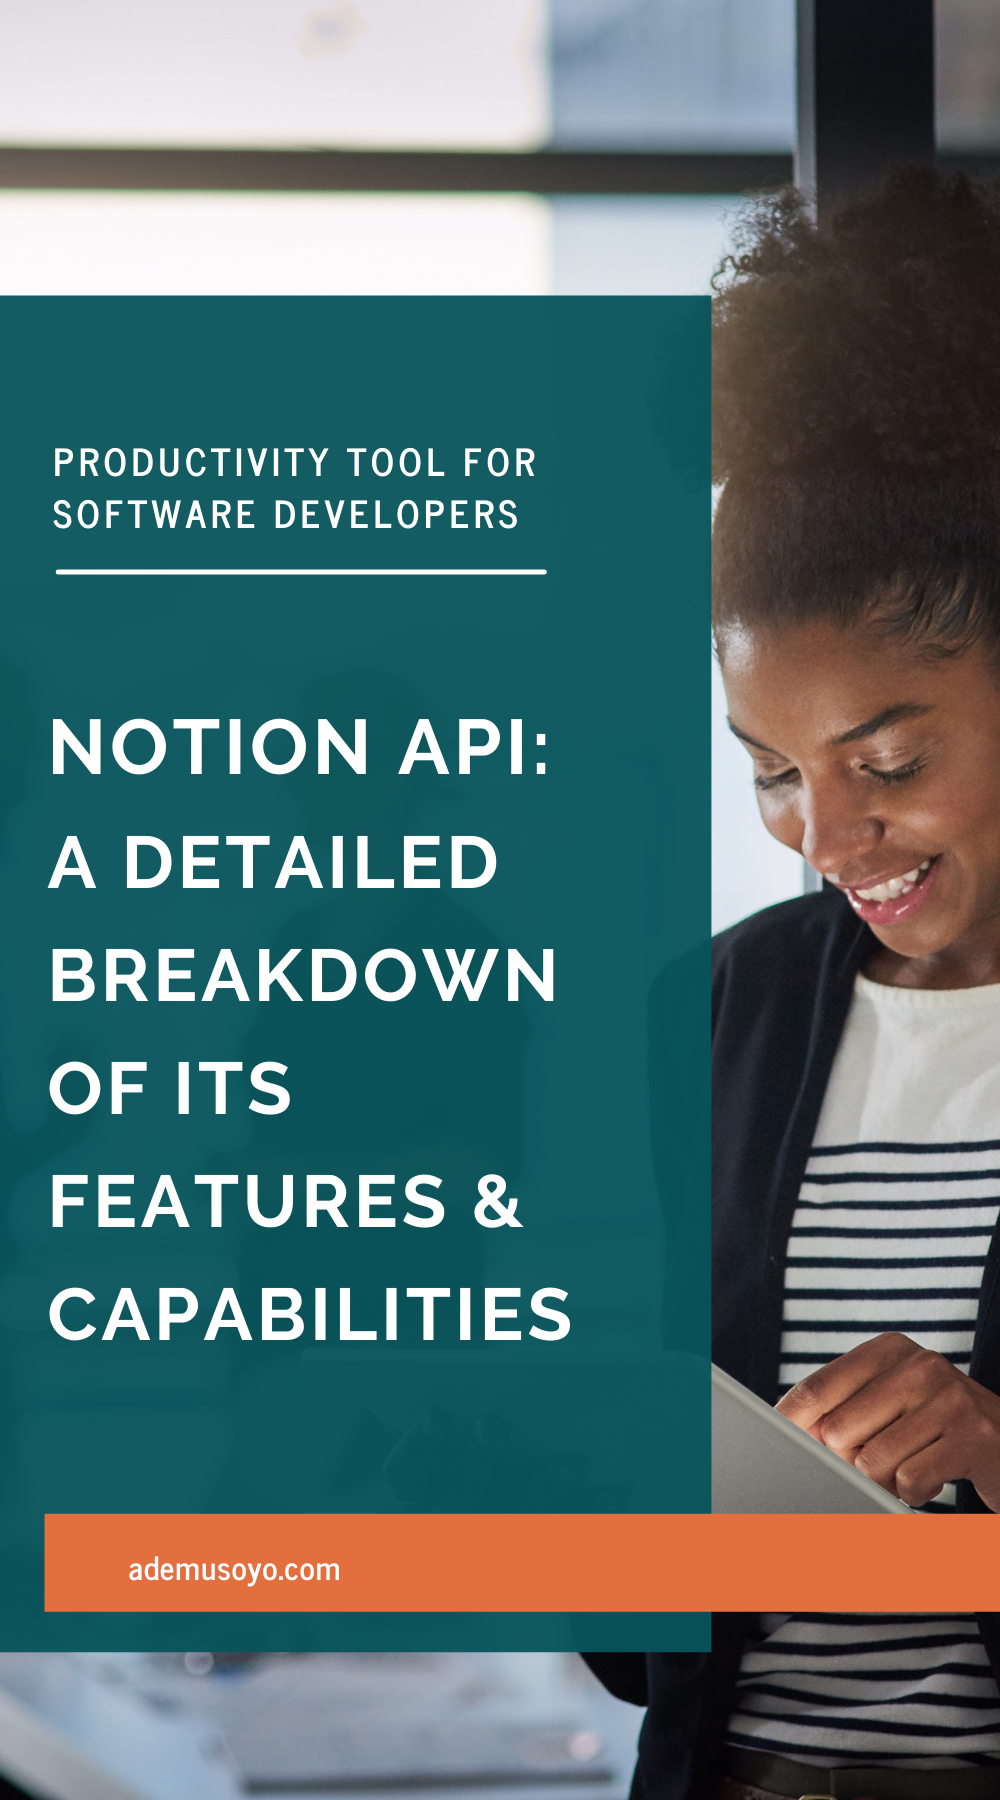 Notion API: A Detailed Breakdown of Its Features & Capabilities